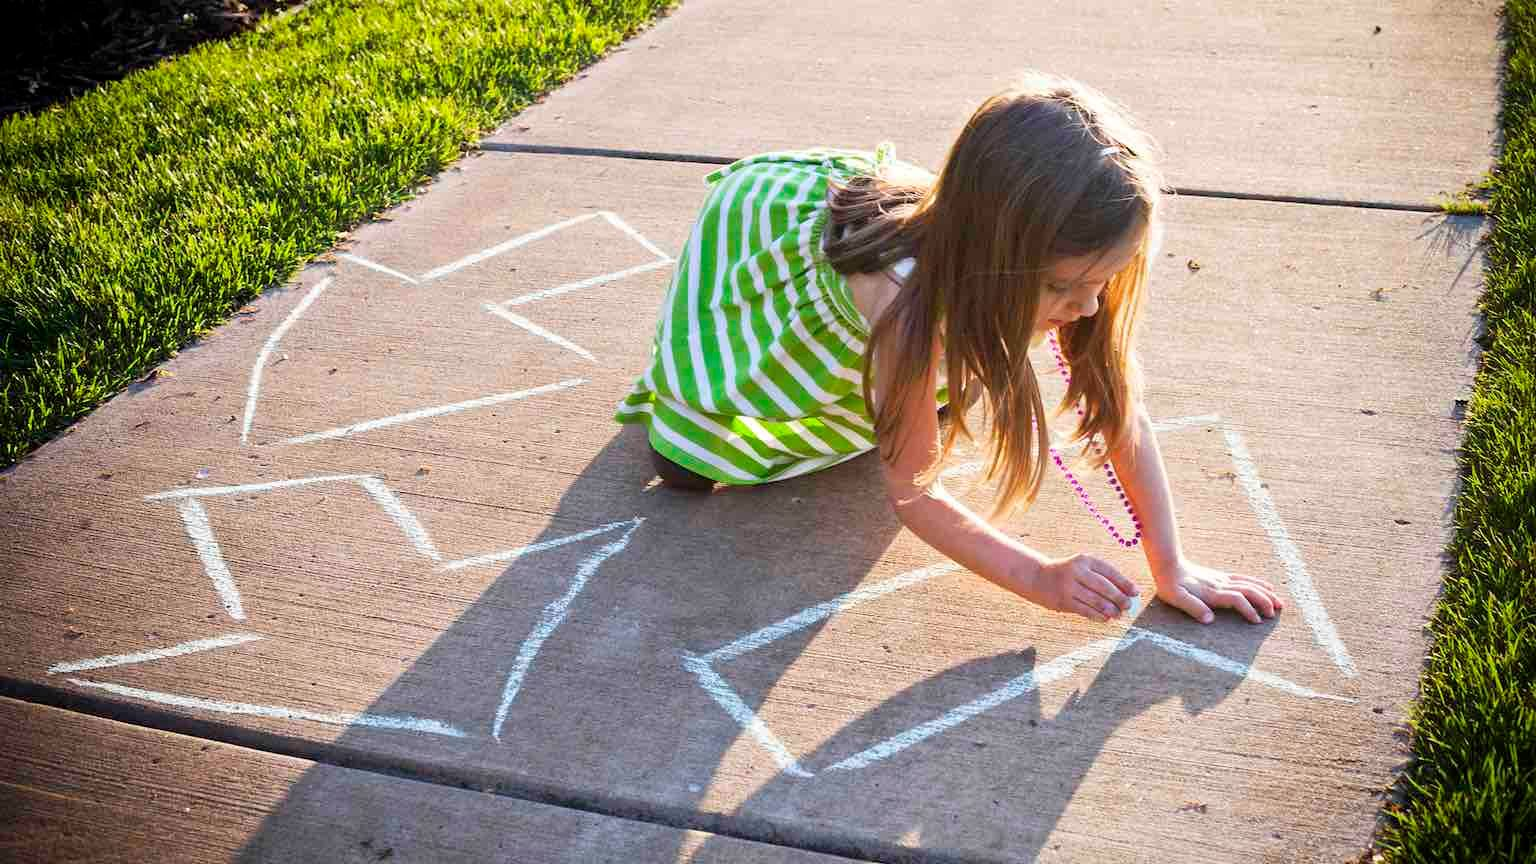 A young girl drawing a recycling symbol with chalk on the sidewalk outside.